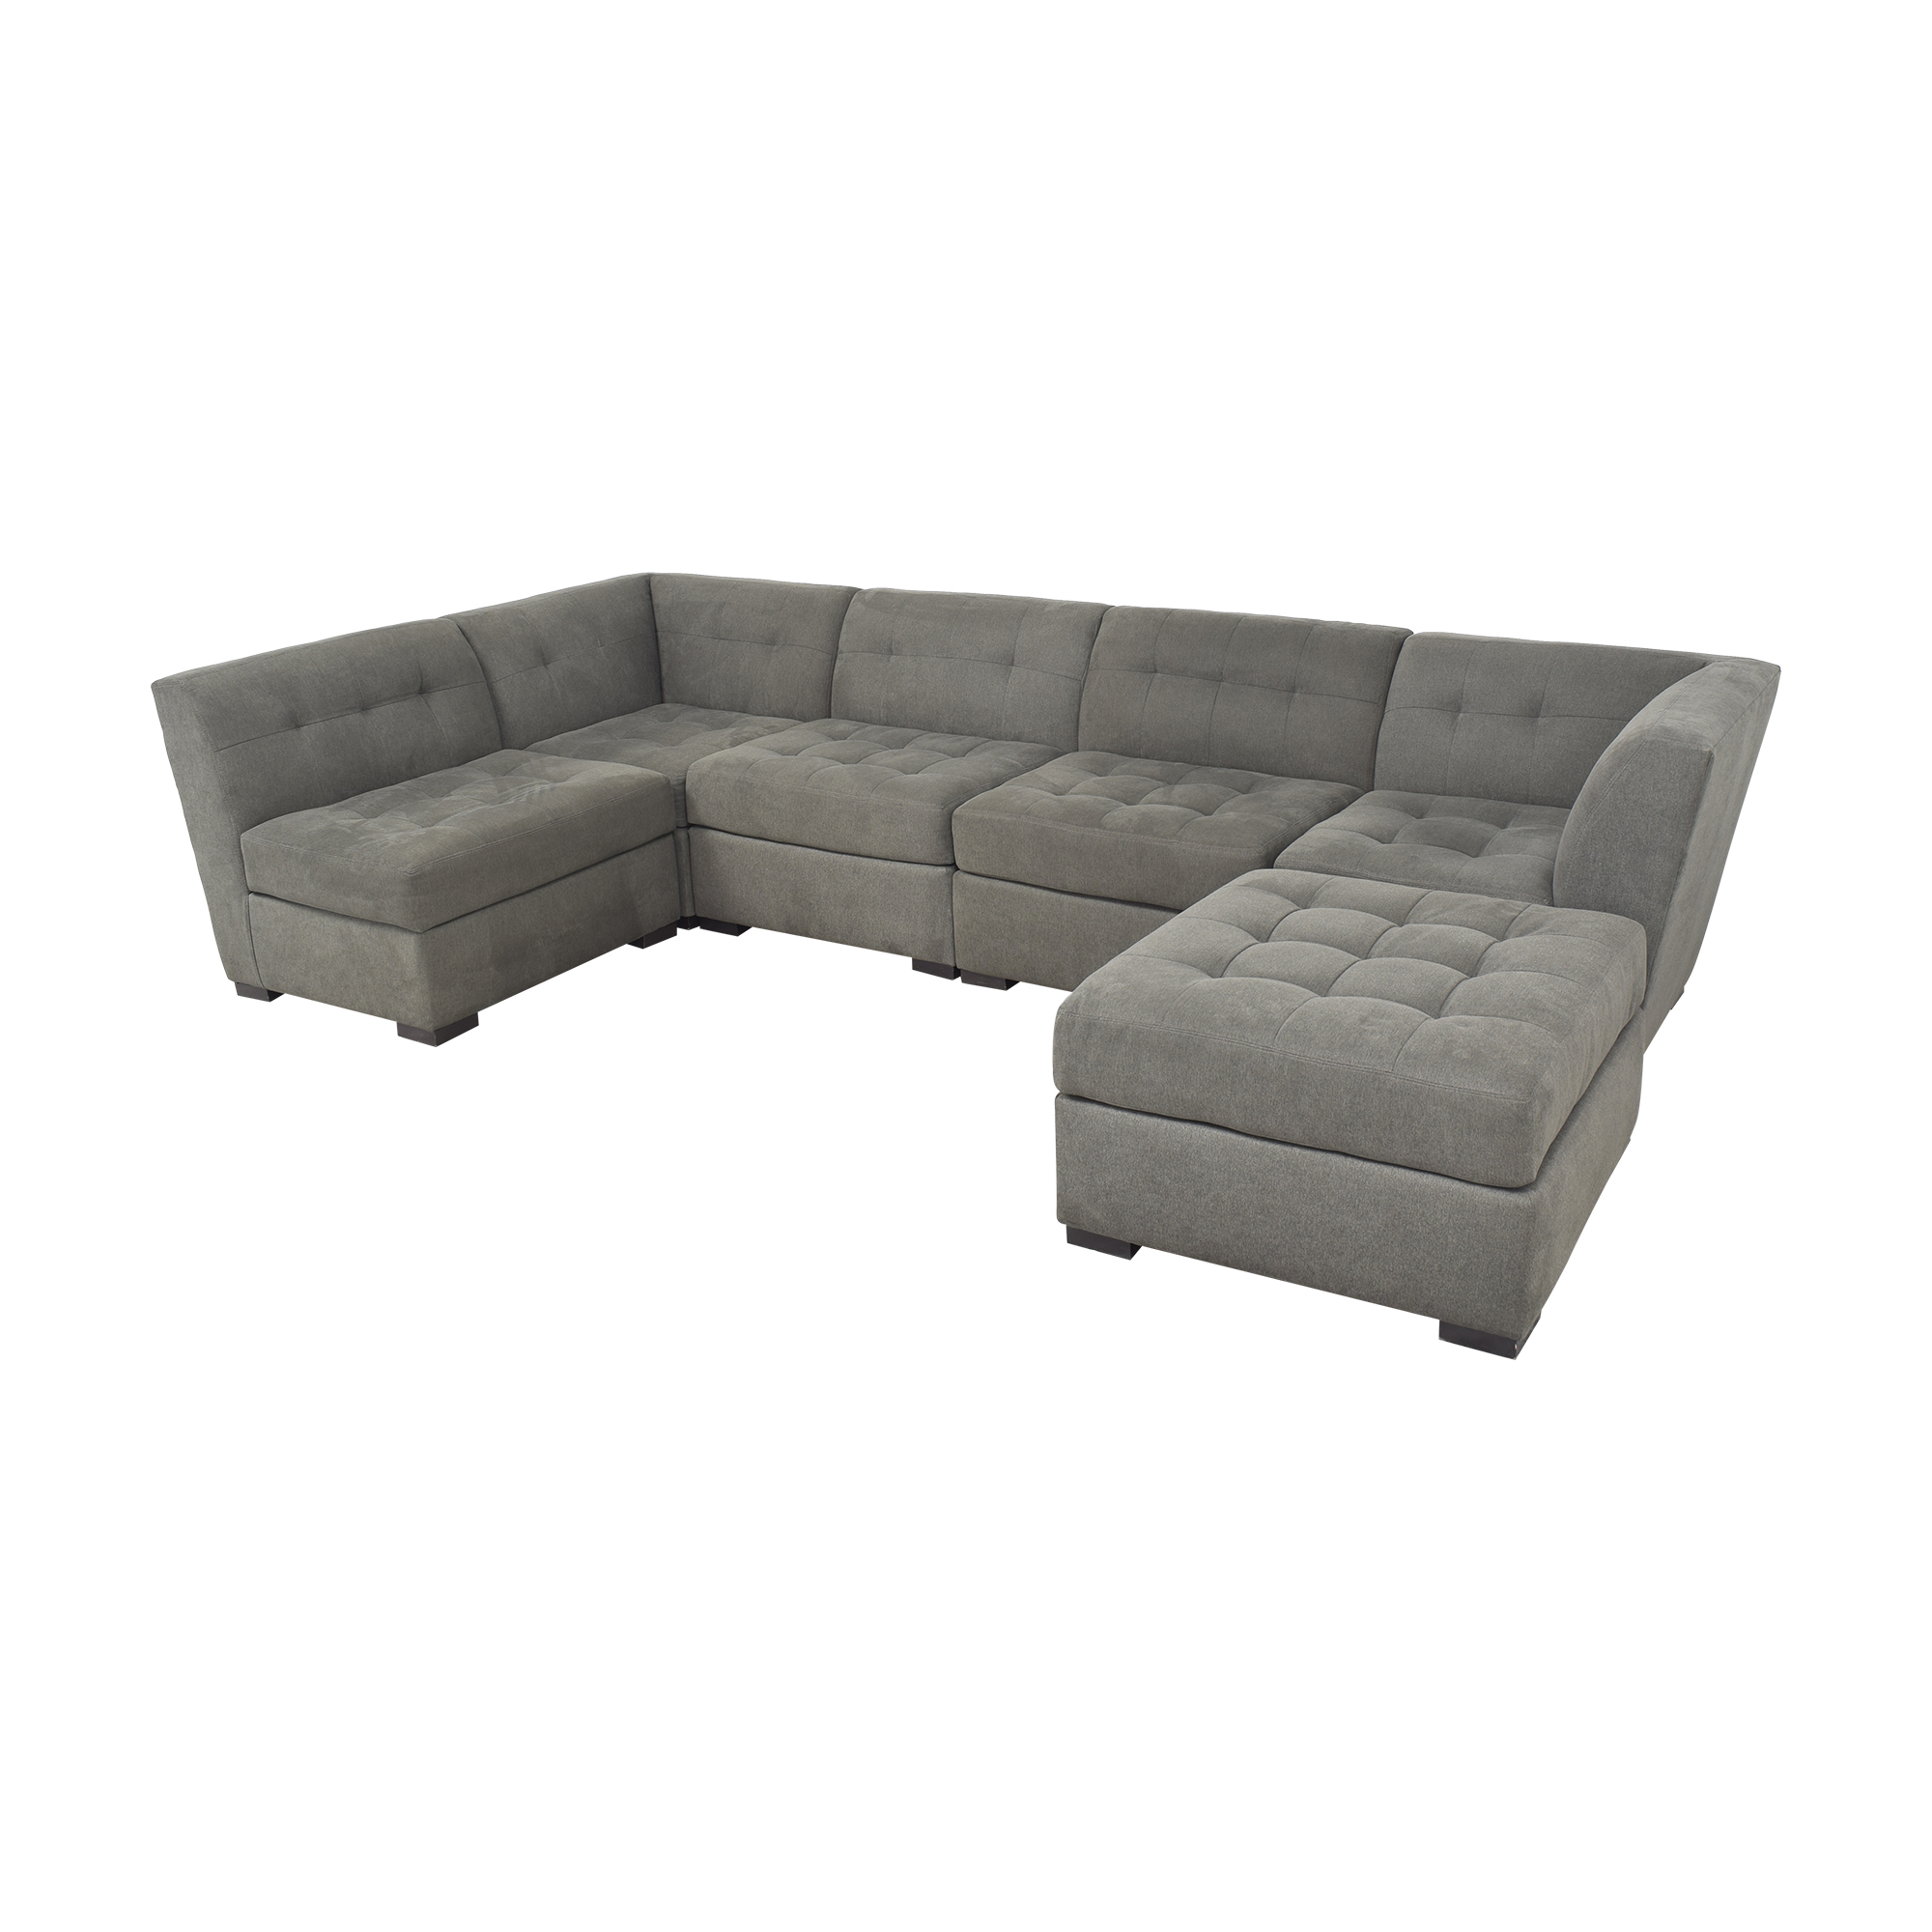 Macy's Macy's Tufted Sectional Sofa and Ottoman Sofas